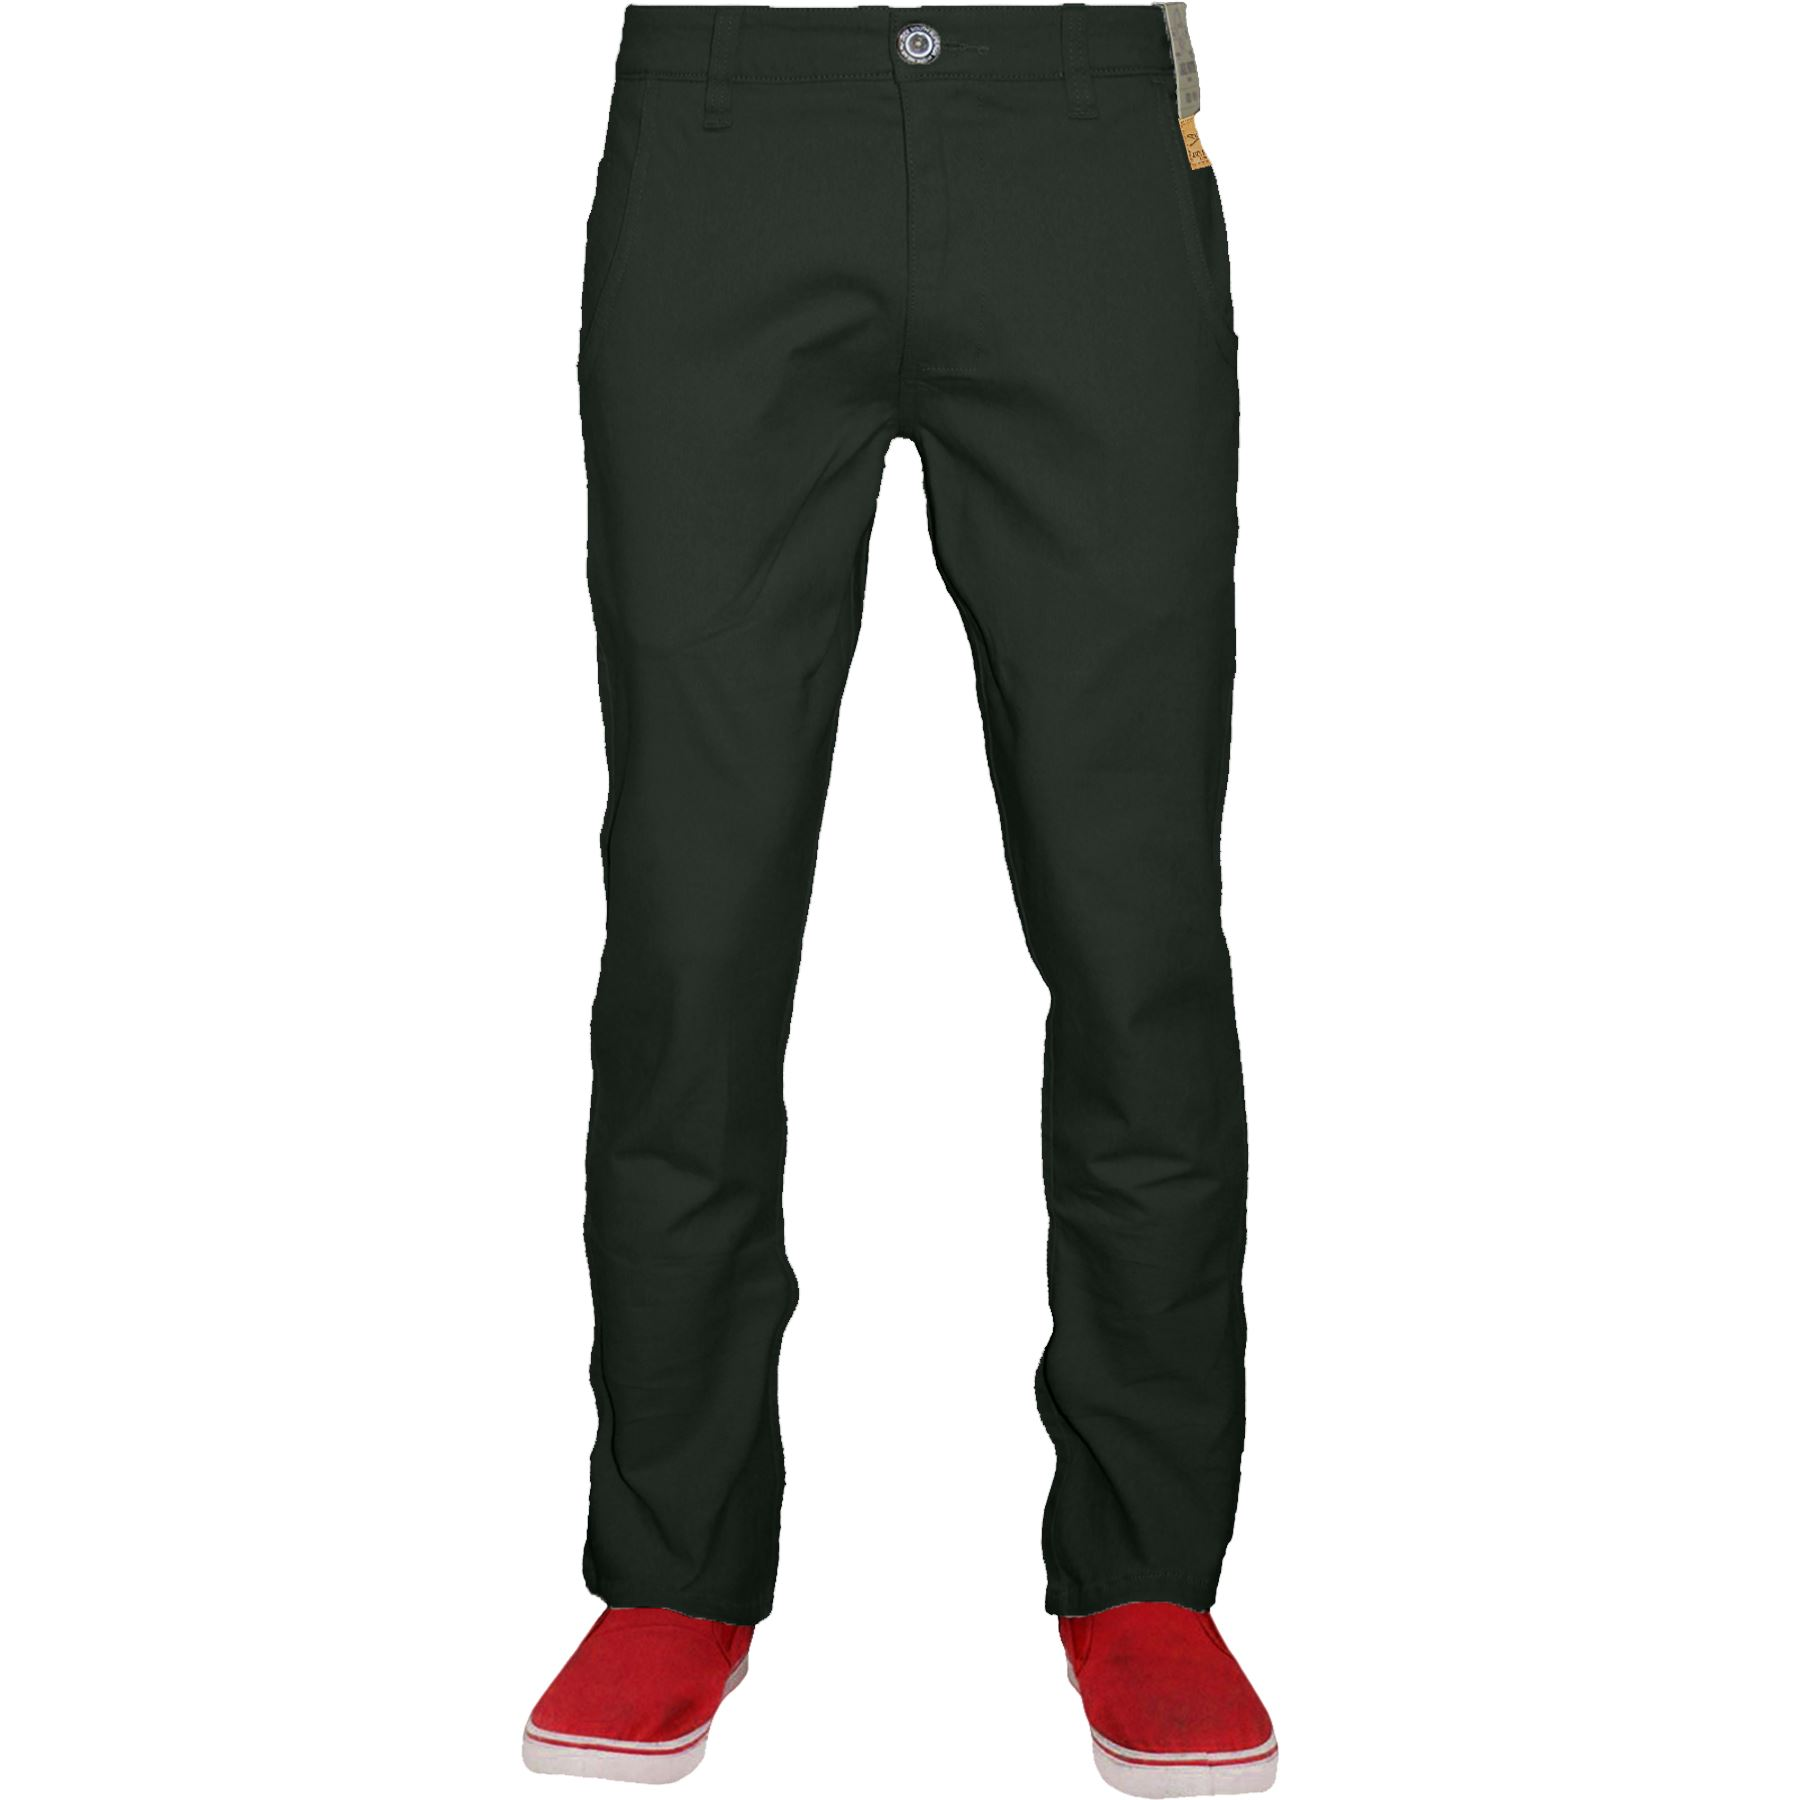 Mens-Stretch-Chino-Jacksouth-Designer-Regular-Fit-Straight-Leg-Trousers-Cotton thumbnail 5